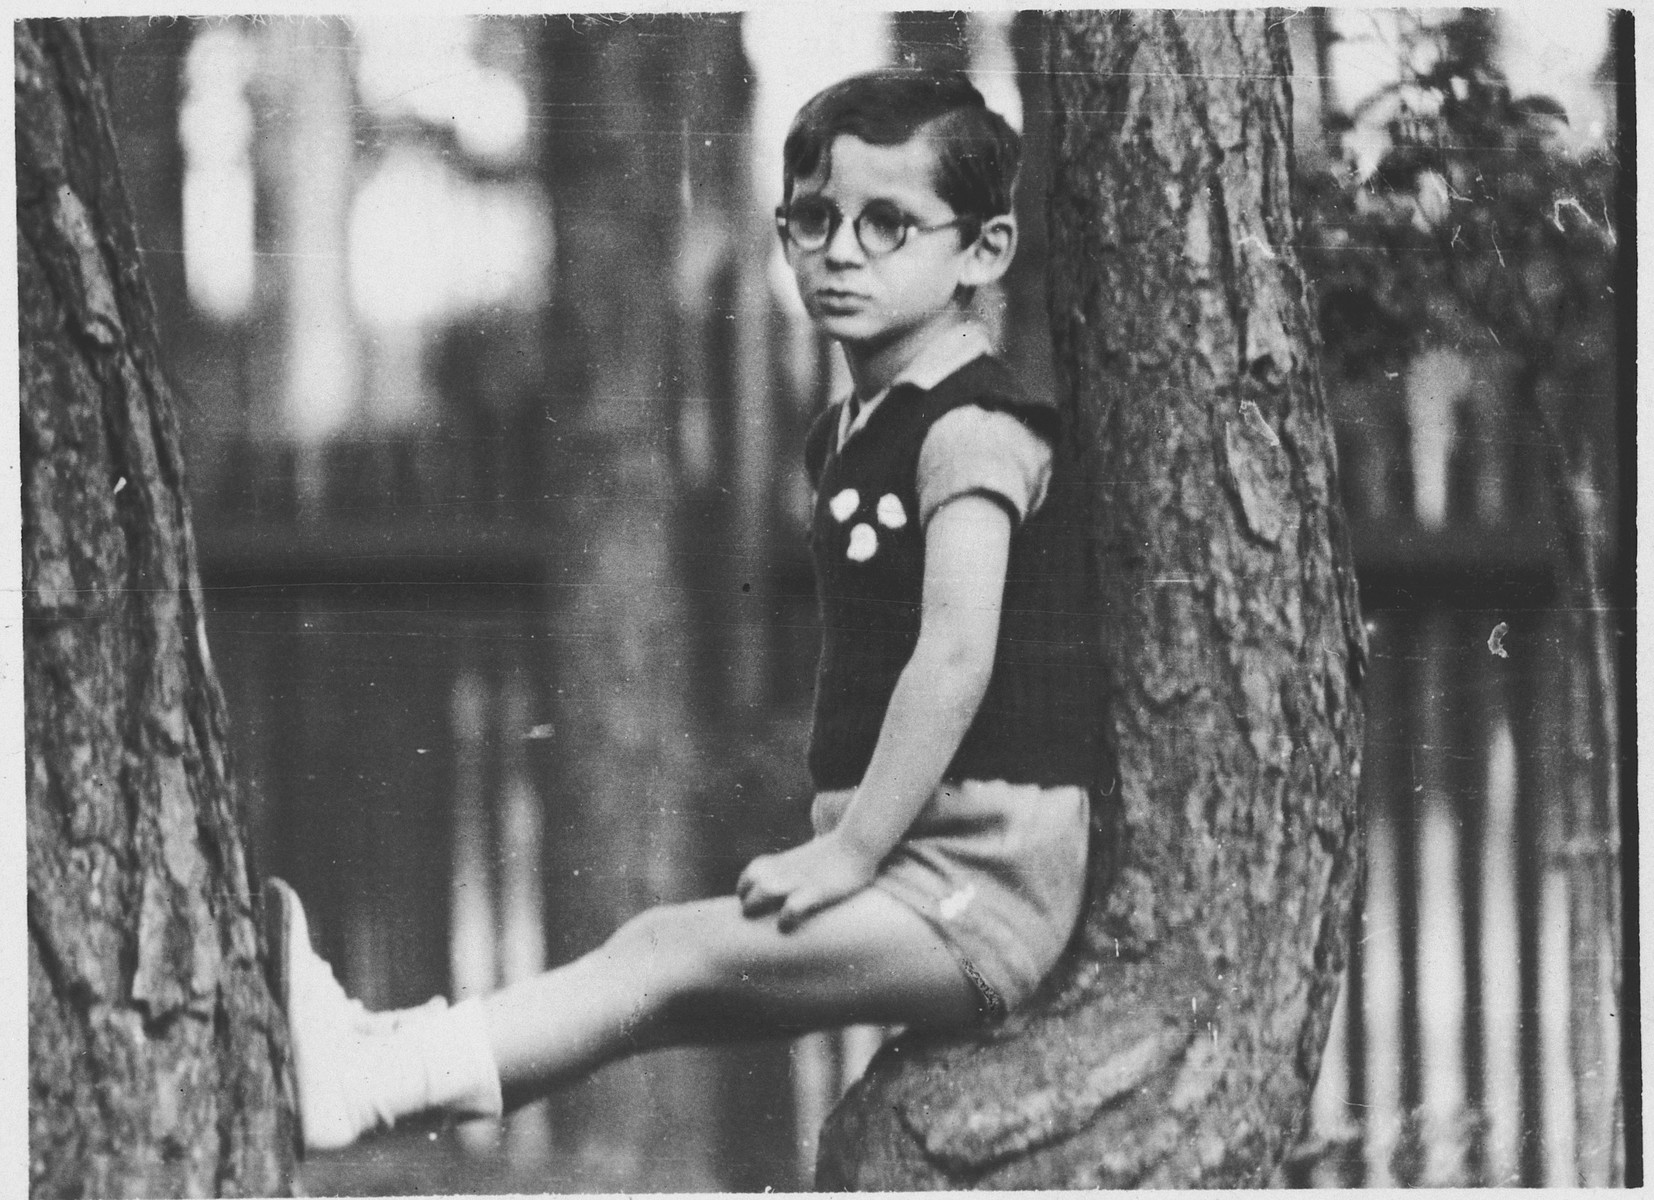 A young boy sits on the branch of a tree.